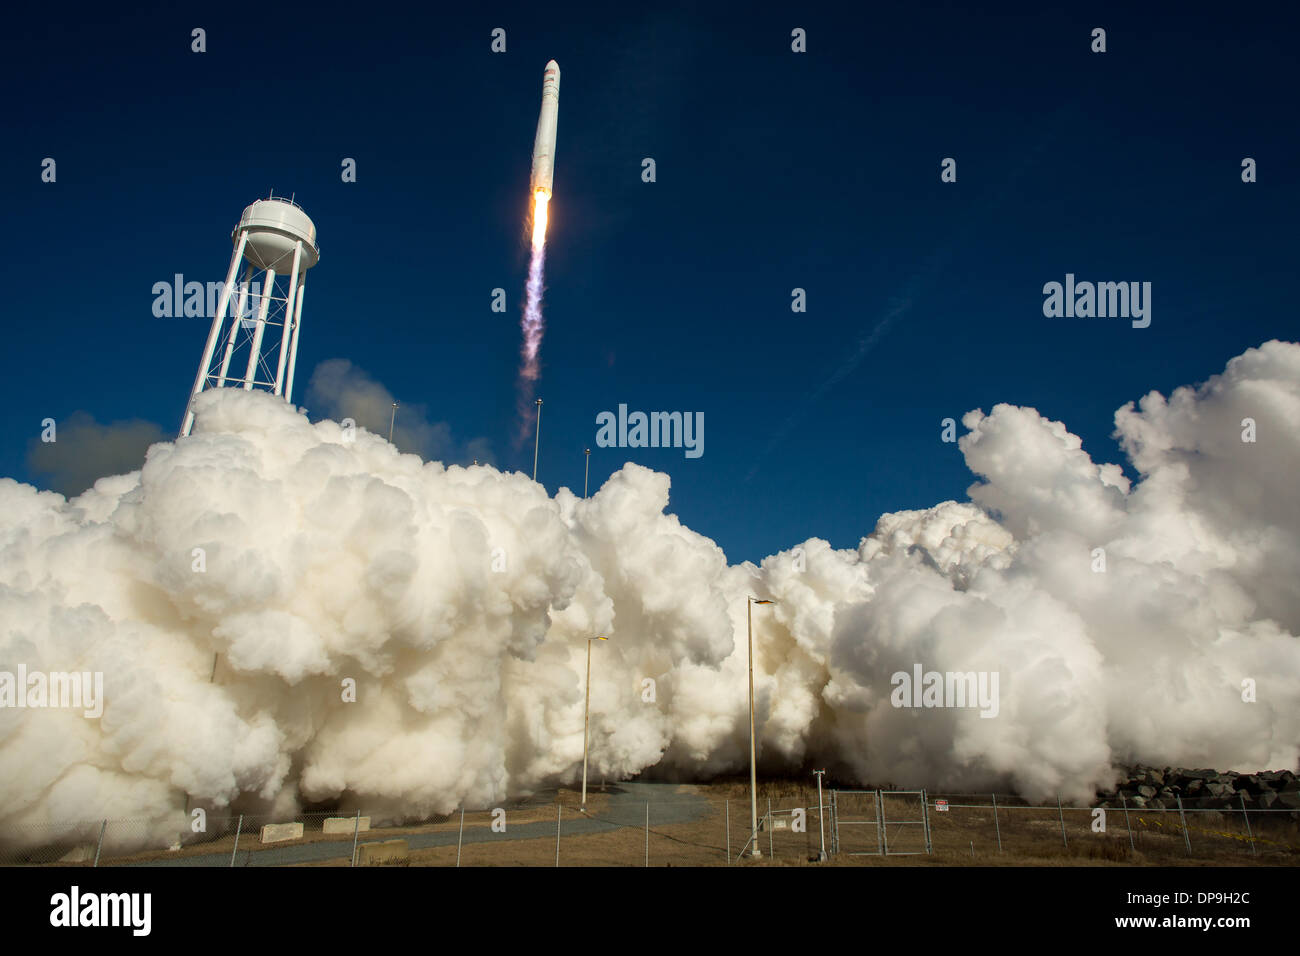 An Orbital Sciences Corporation Antares rocket launches from Pad-0A at NASA's Wallops Flight Facility January 9, 2014 in Wallops Island, VA. Antares is carrying the Cygnus spacecraft on a cargo resupply mission to the International Space Station. - Stock Image